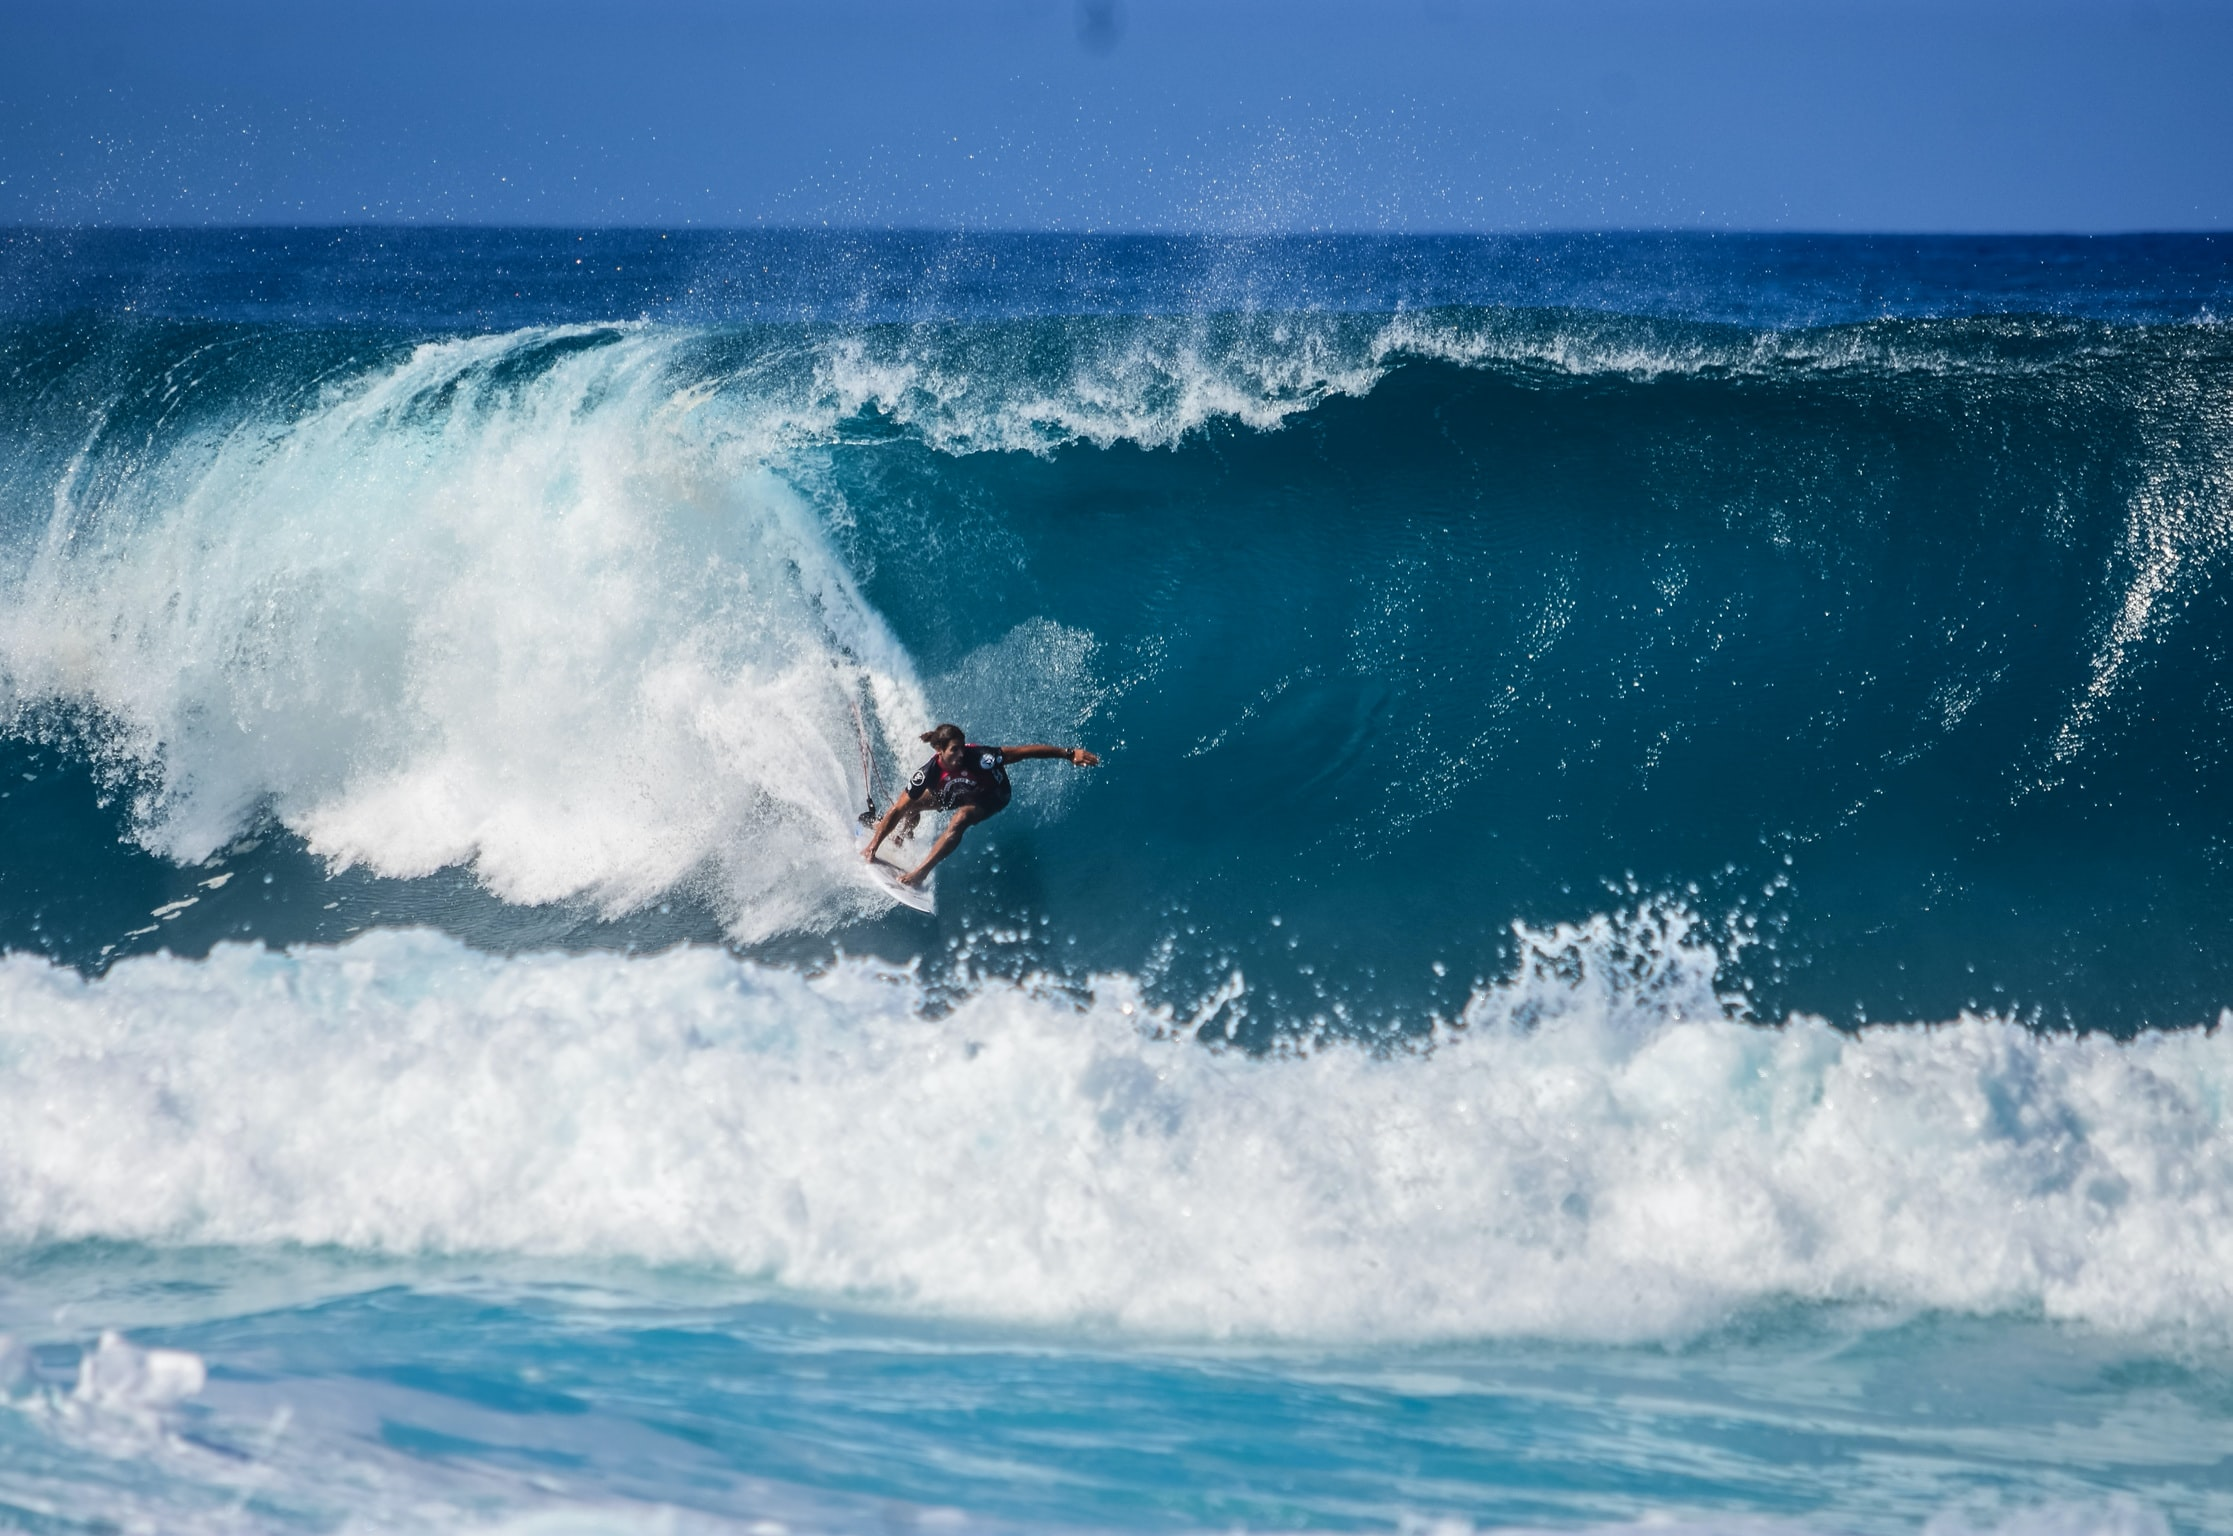 A surfer riding a large wave in the blue sea, underneath a blue sky